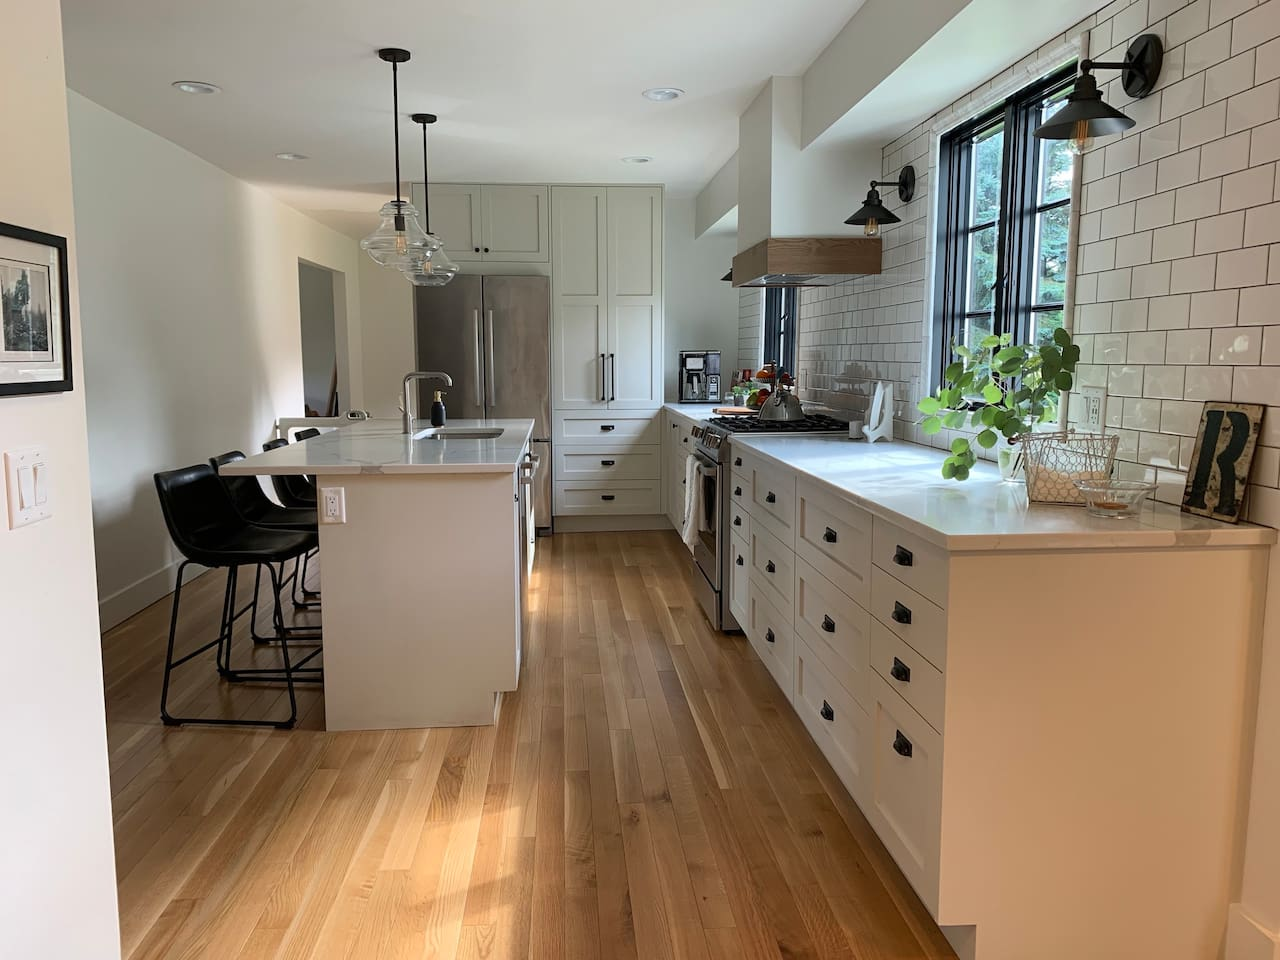 Remodeled Kitchen - perfect for entertaining